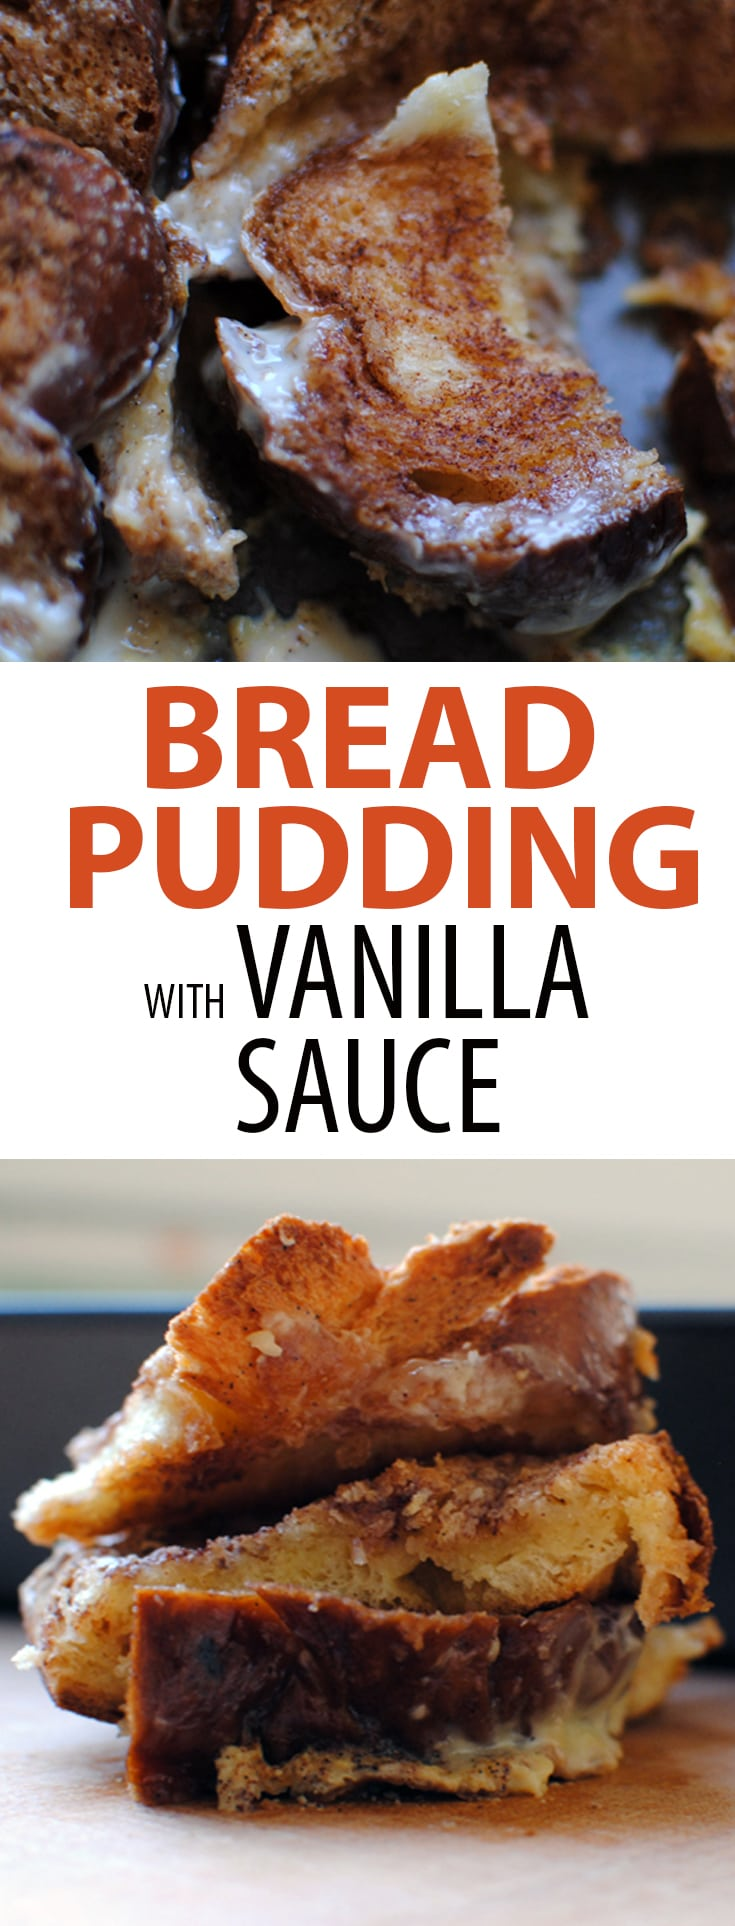 Bread Pudding with Vanilla Sauce